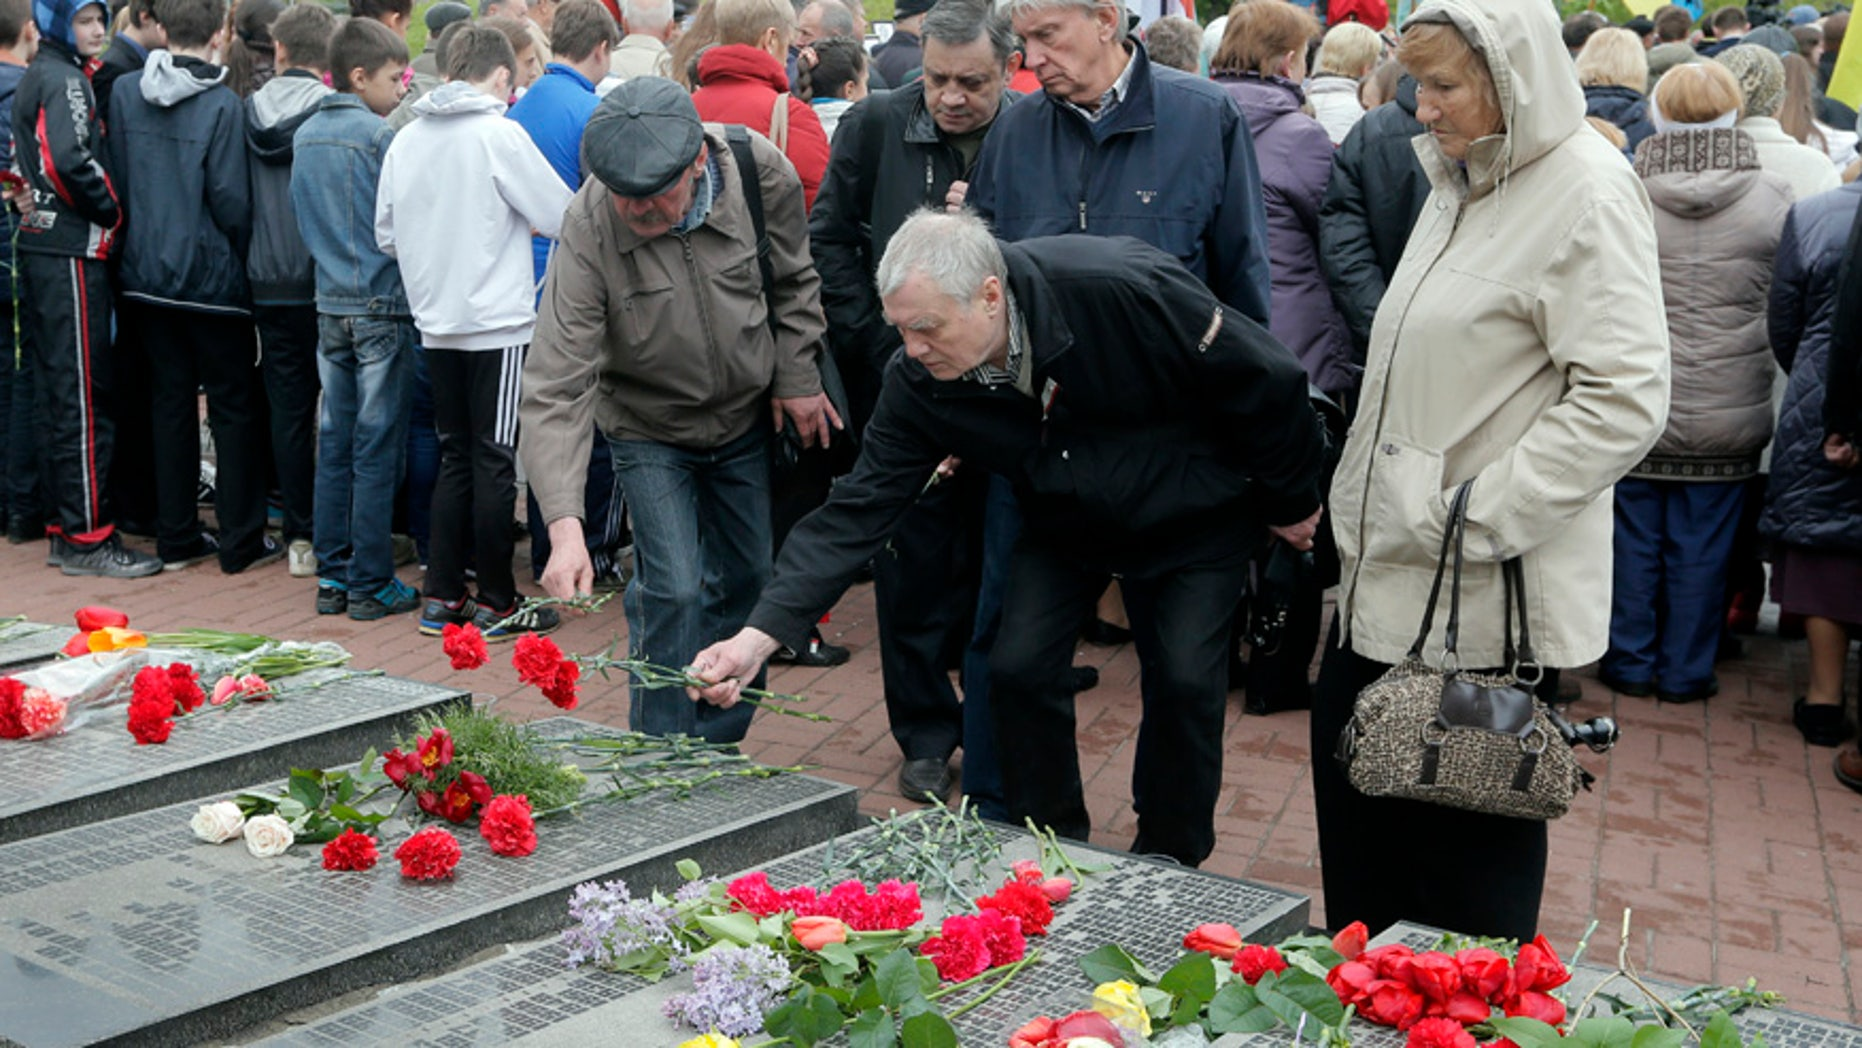 April 26, 2016: Ukrainians lay flowers to the tombstone that bears their relative's names, during a ceremony to commemorate victims of Chernobyl tragedy at a monument to them in Ukraine's capital Kiev, Ukraine.